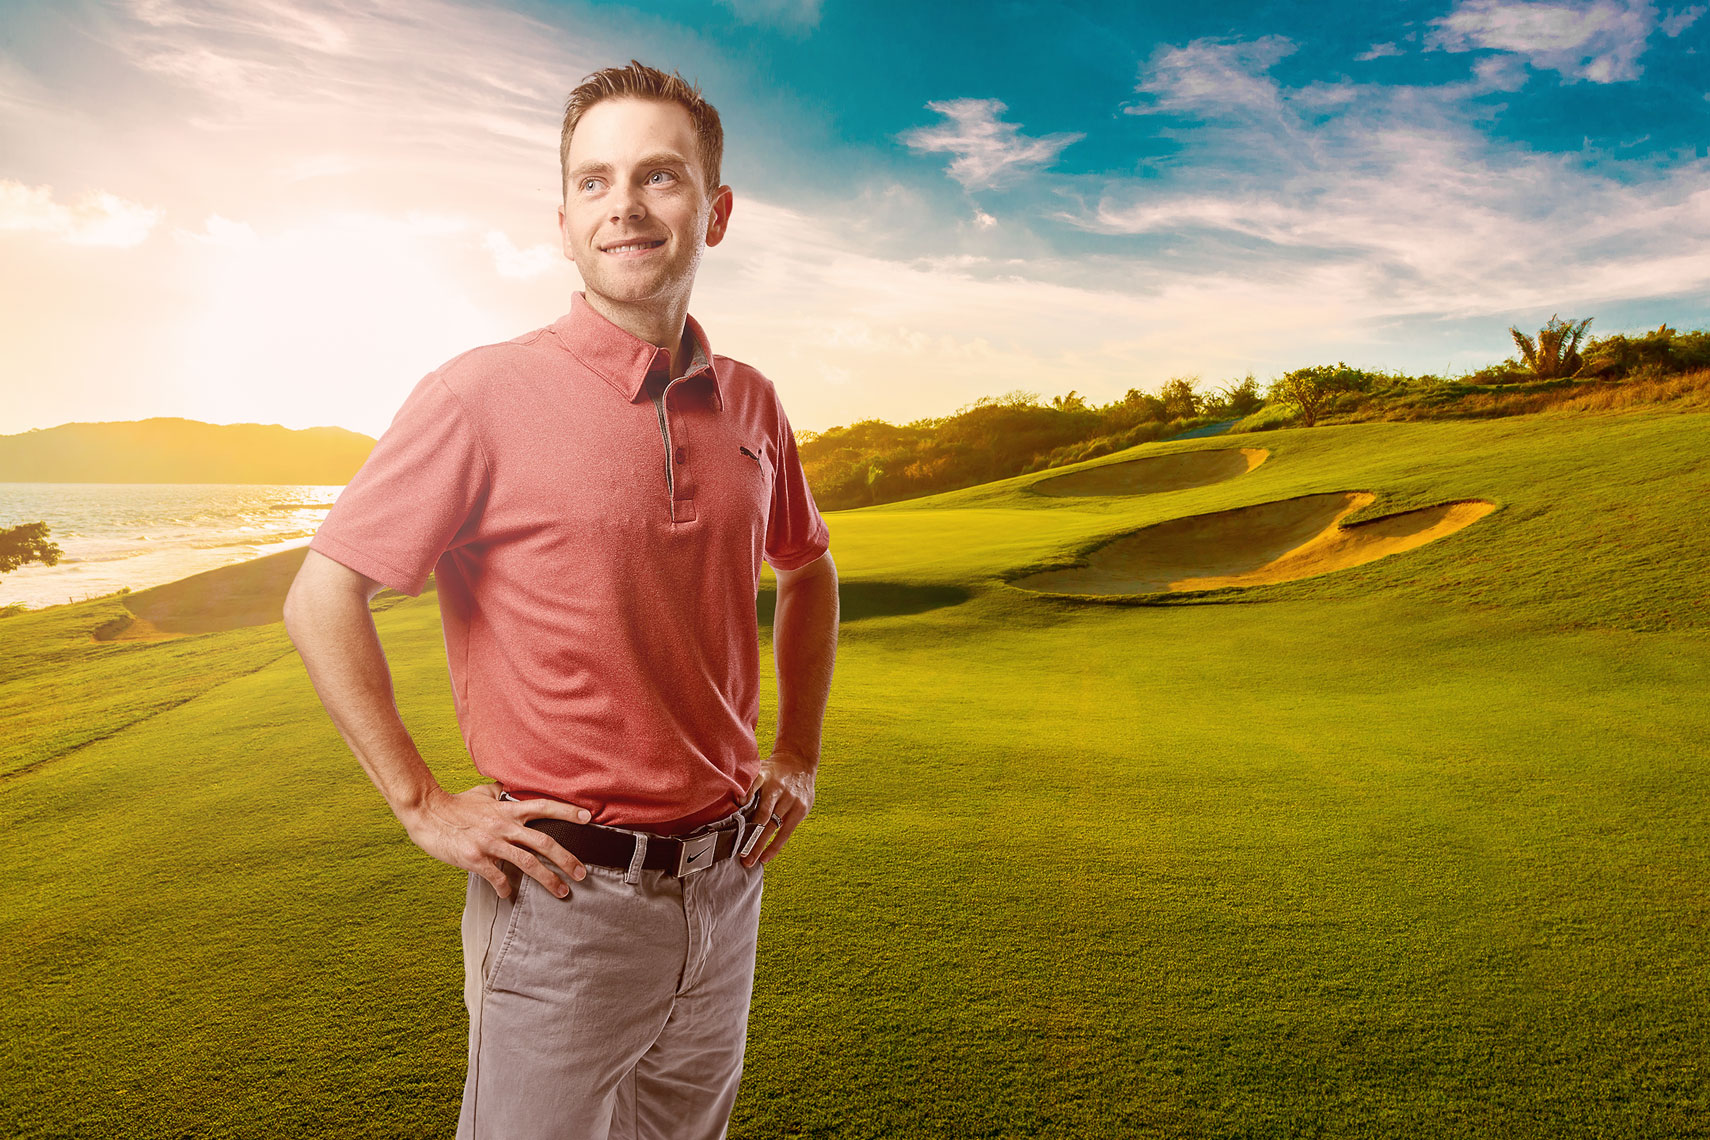 Man on golf course/backlit/pink shirt/lifestyle photography